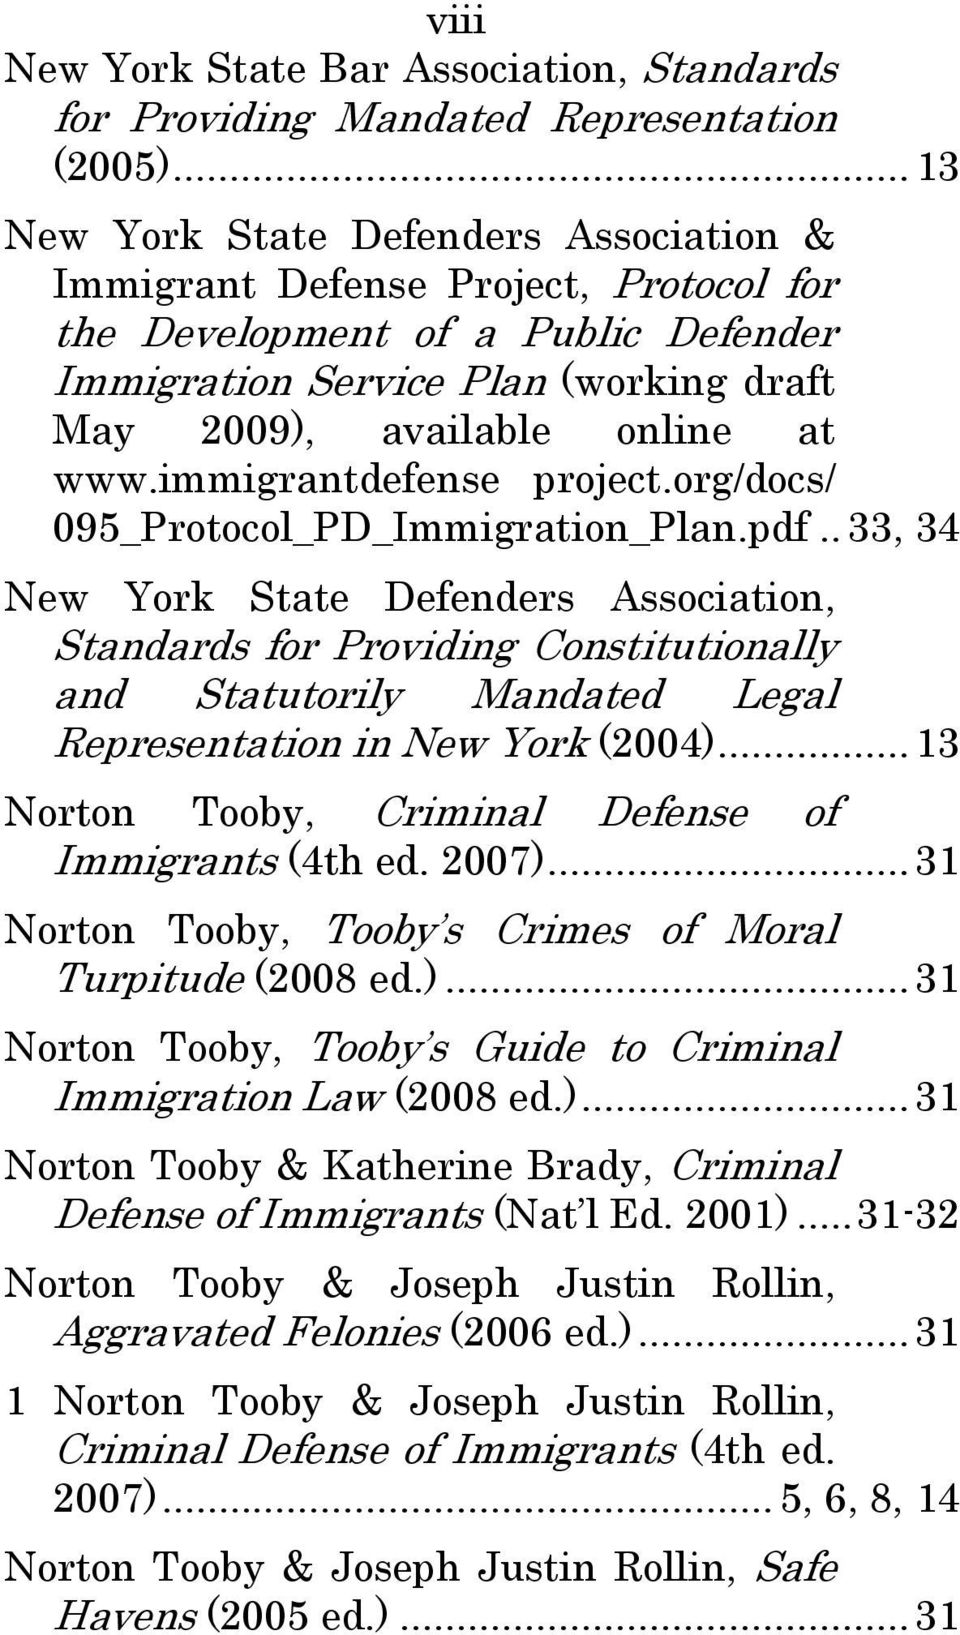 immigrantdefense project.org/docs/ 095_Protocol_PD_Immigration_Plan.pdf.